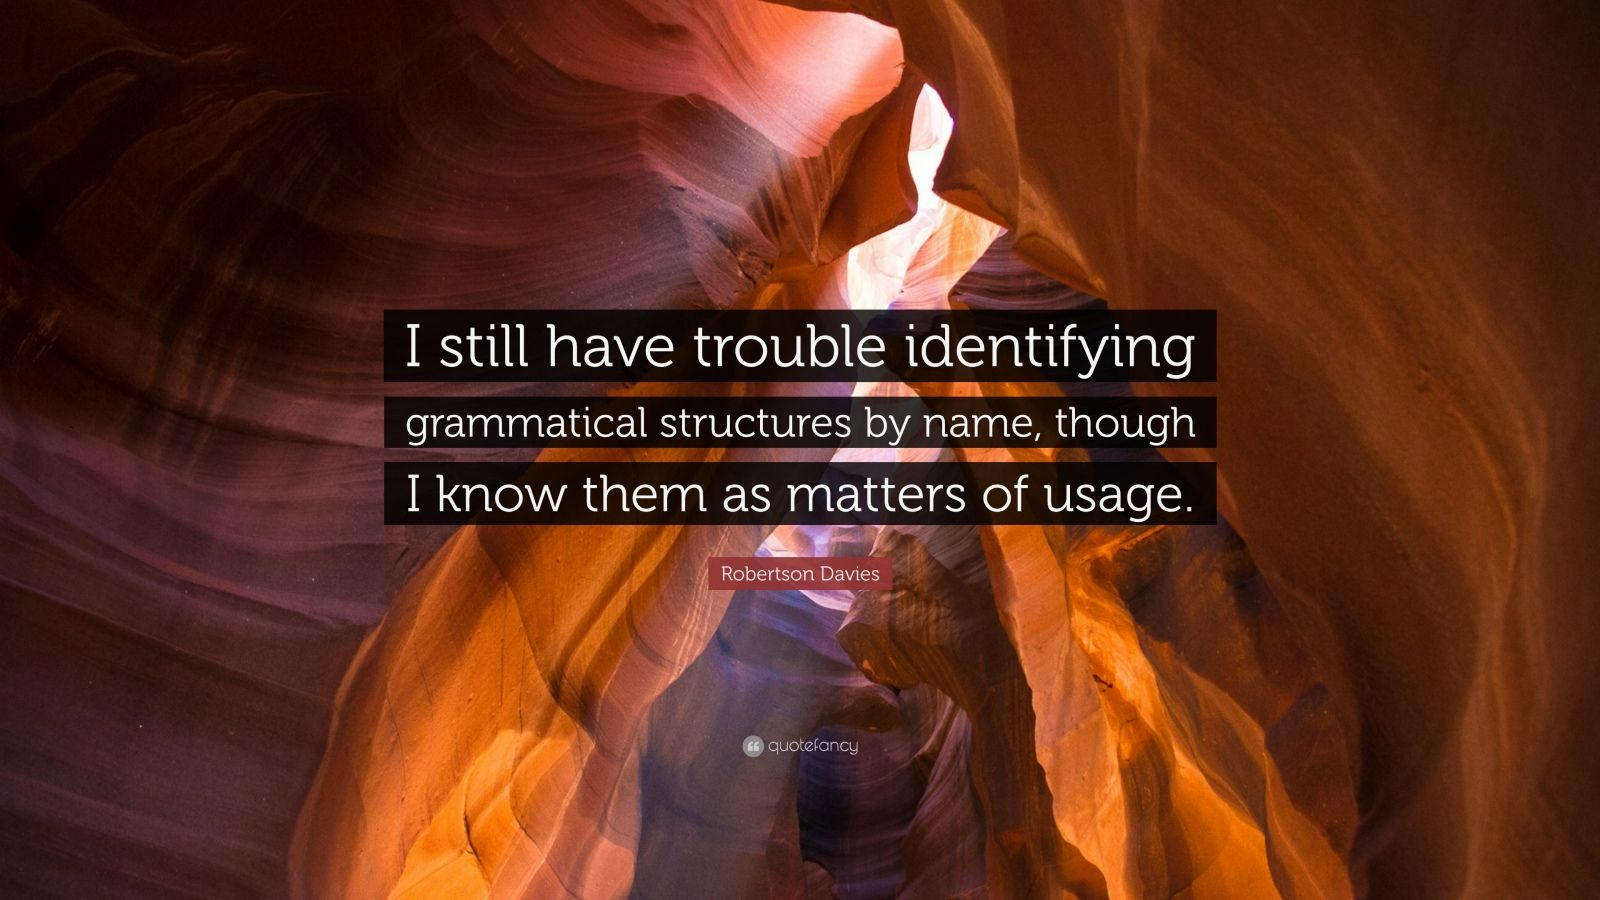 """Robertson Davies Quote: """"I still have trouble identifying grammatical structures by name, though I know them as matters of usage."""""""